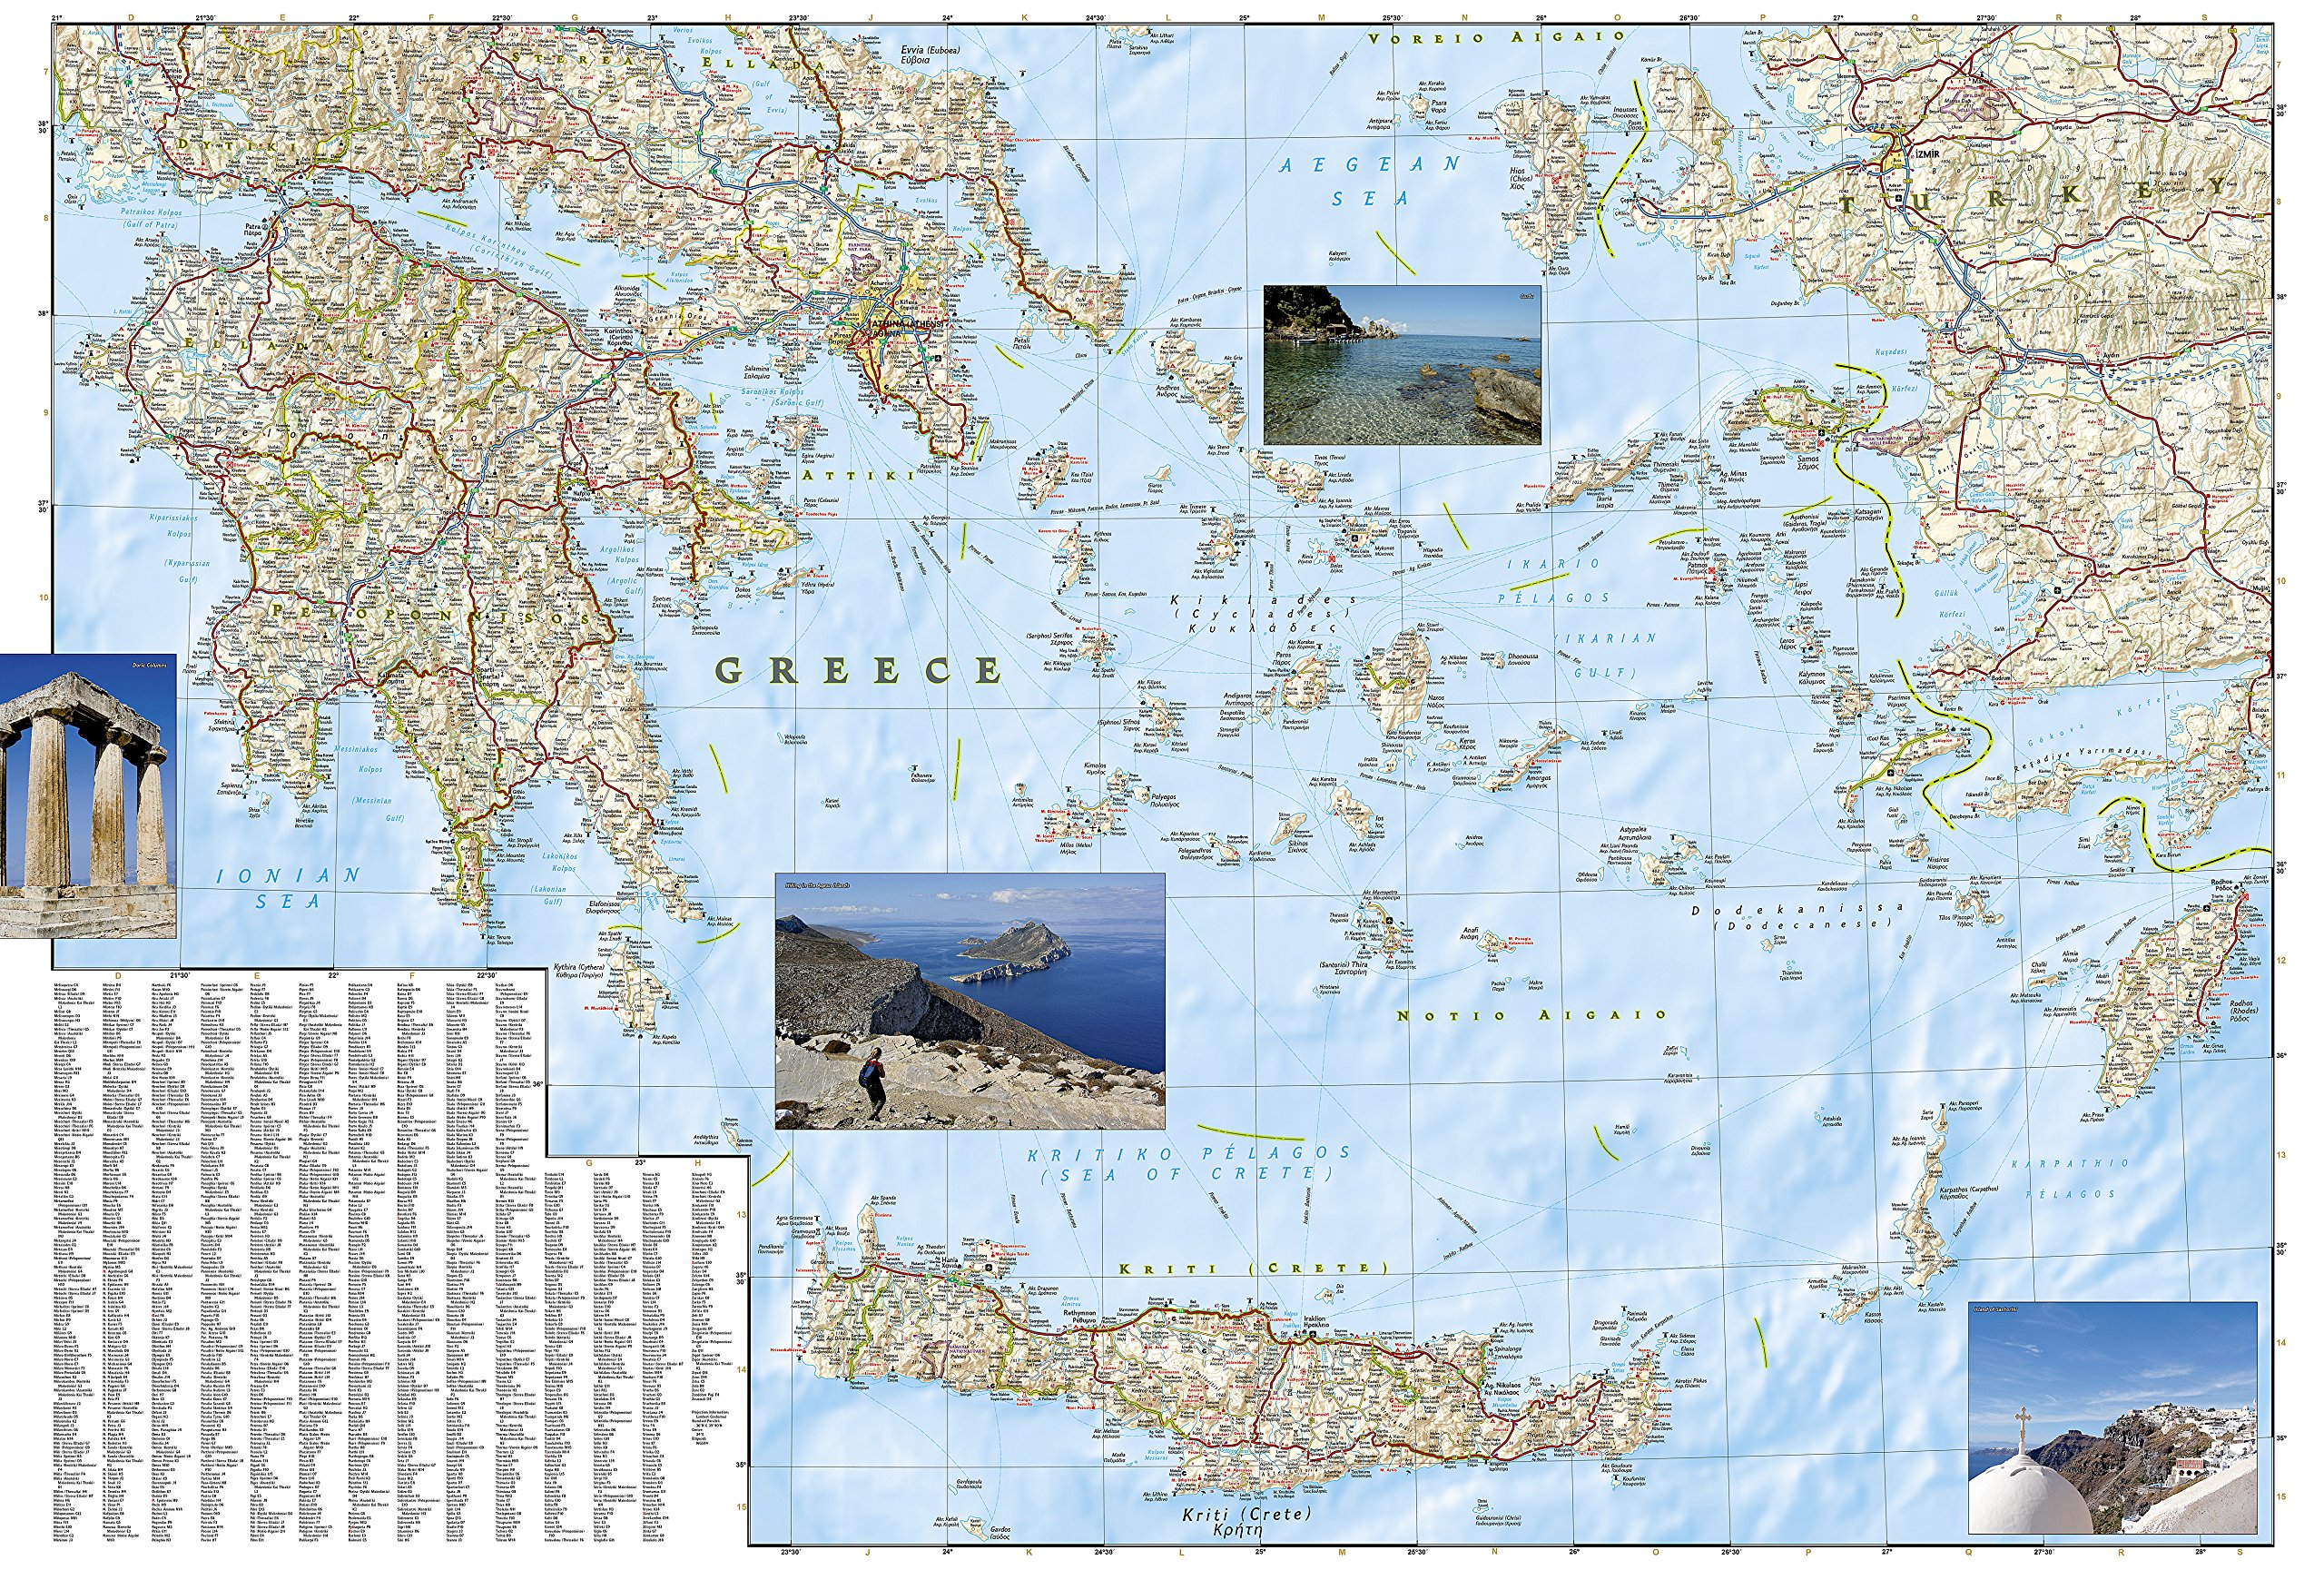 Greece National Geographic Adventure Map National Geographic